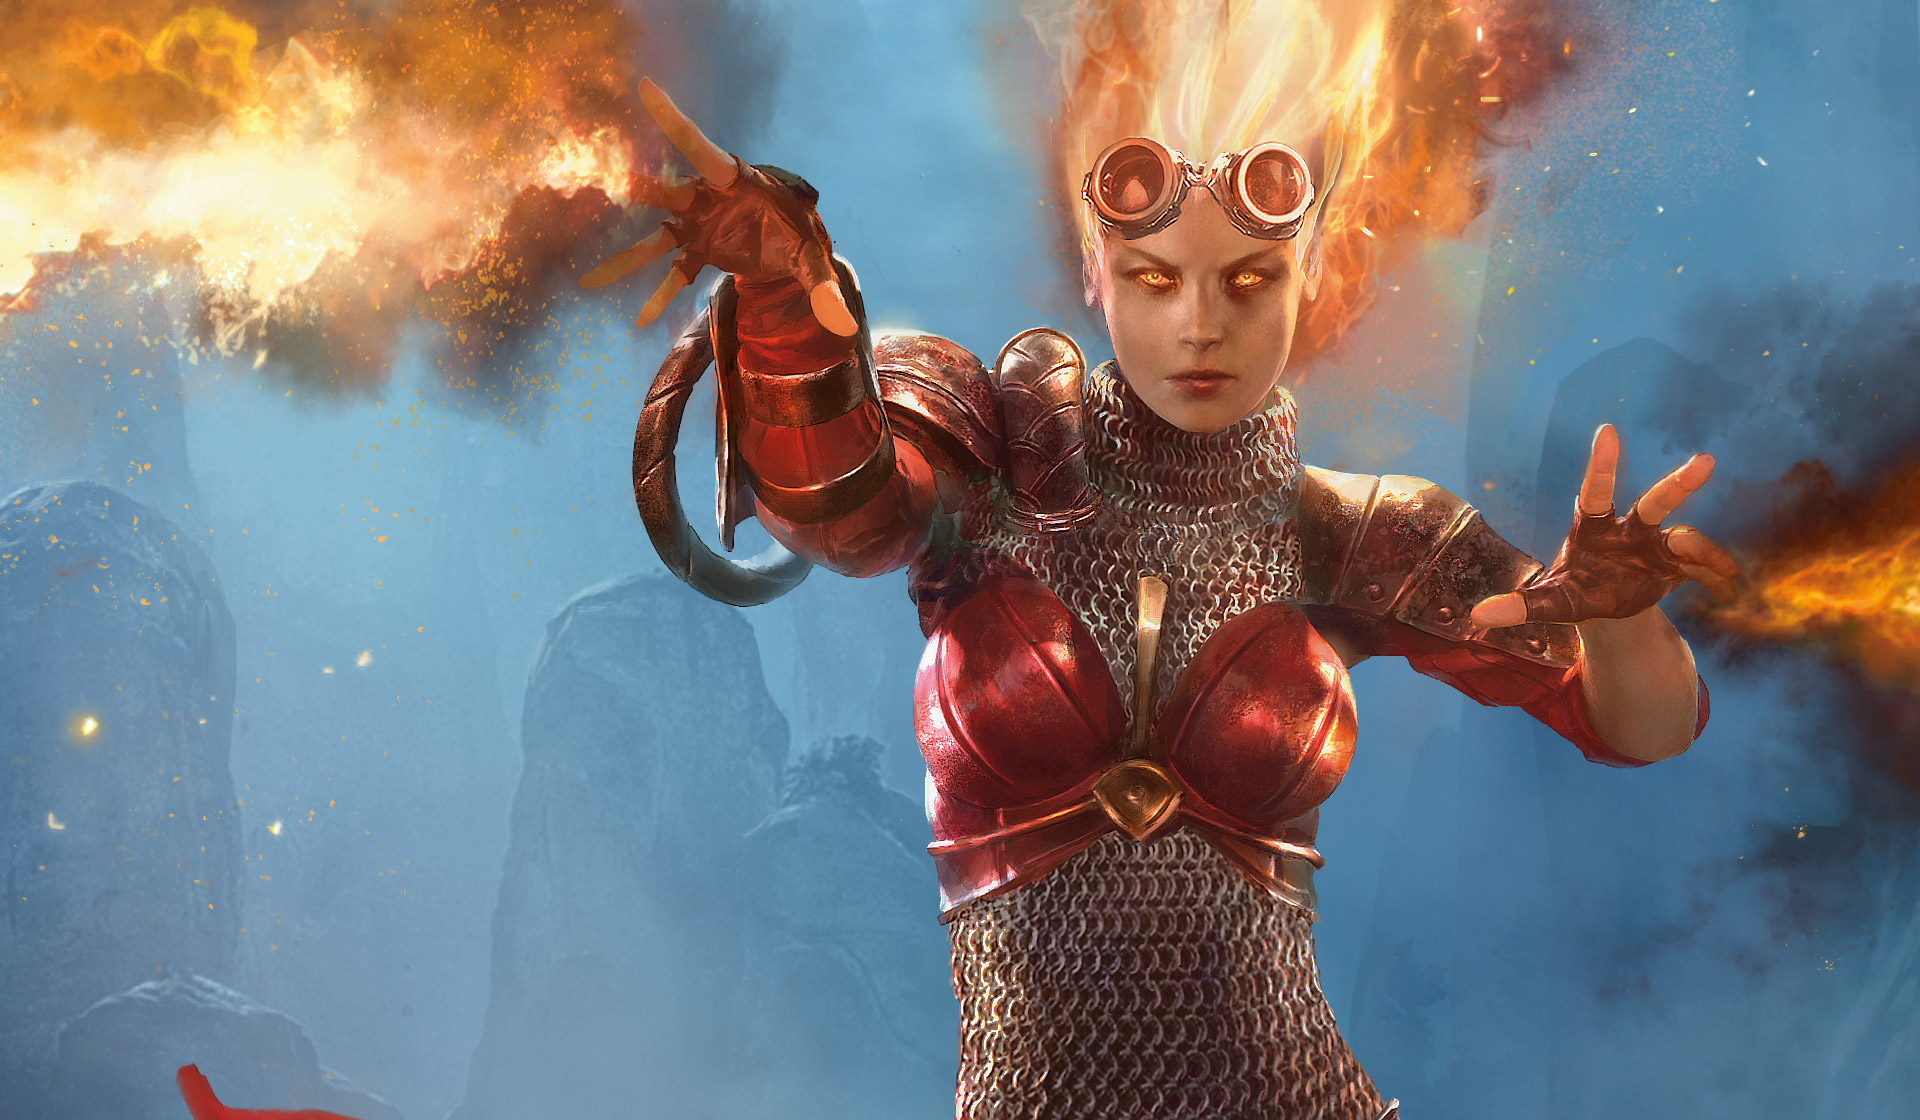 Planeswalker Chandra Nalaar wielding her trademark fireballs. Here hair is aflame, and a pair of welding goggles is on her forehead.